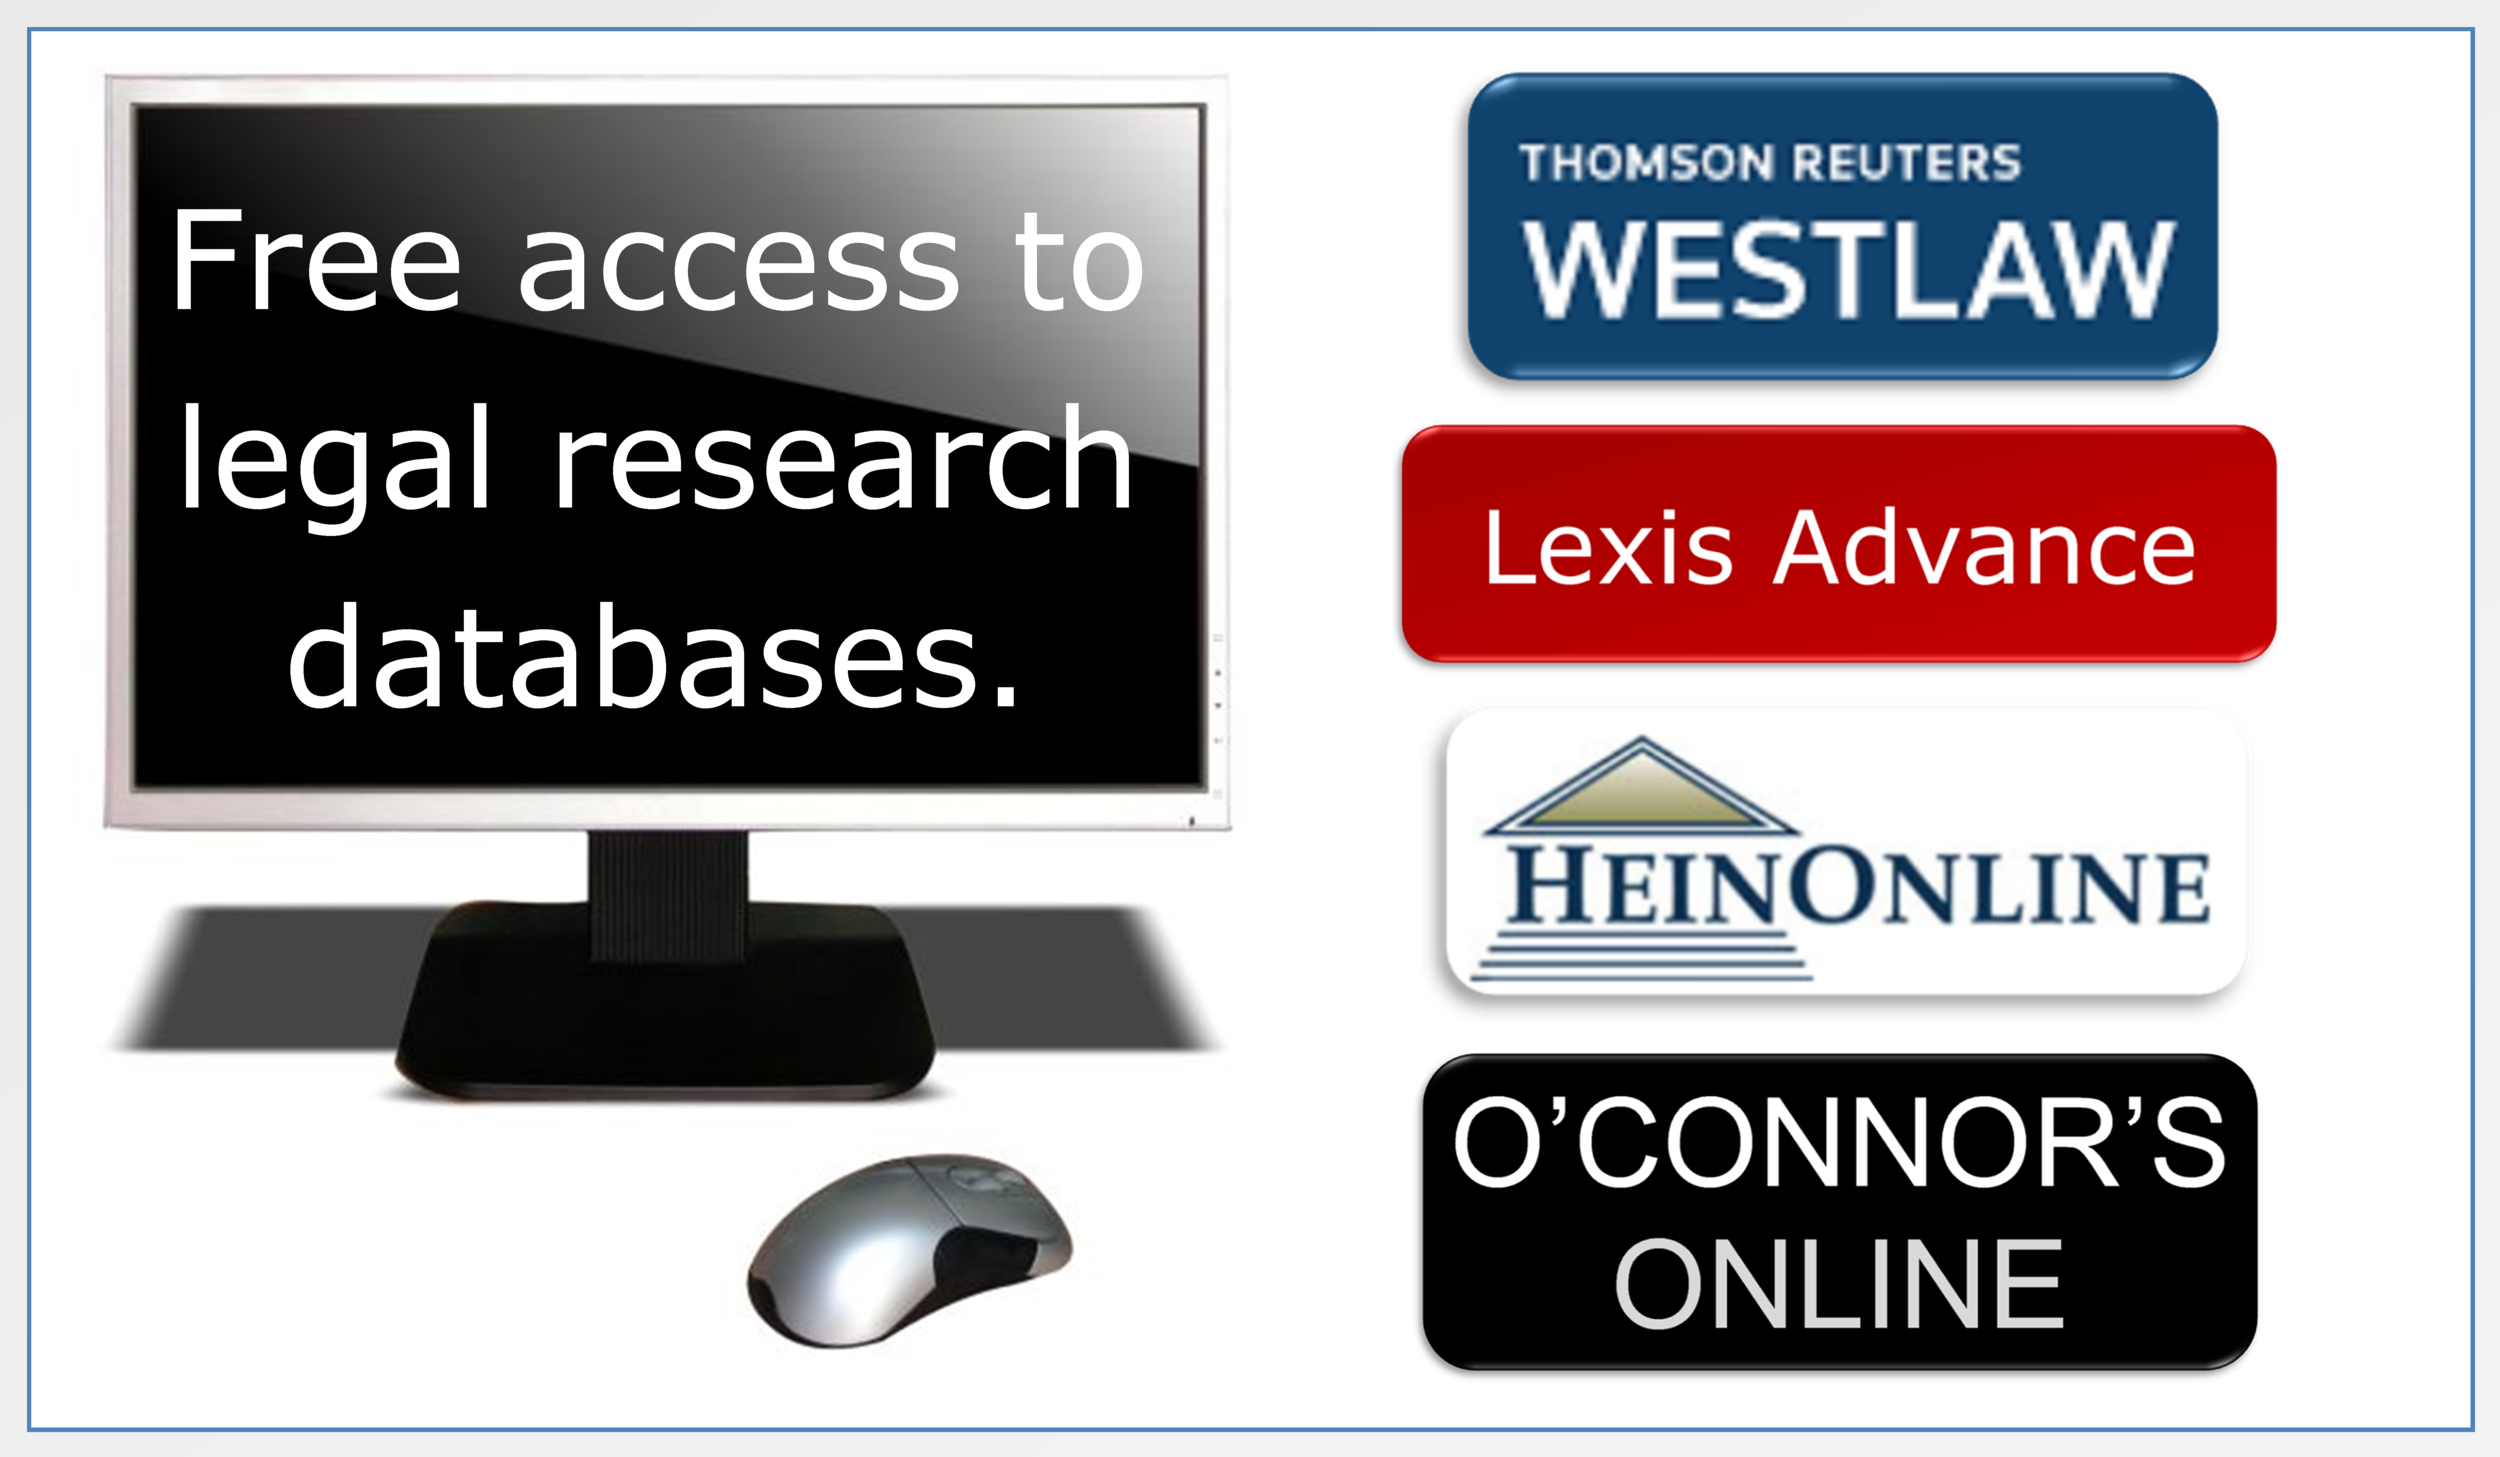 Free access to professional legal research databases at the Harris County Law Library.